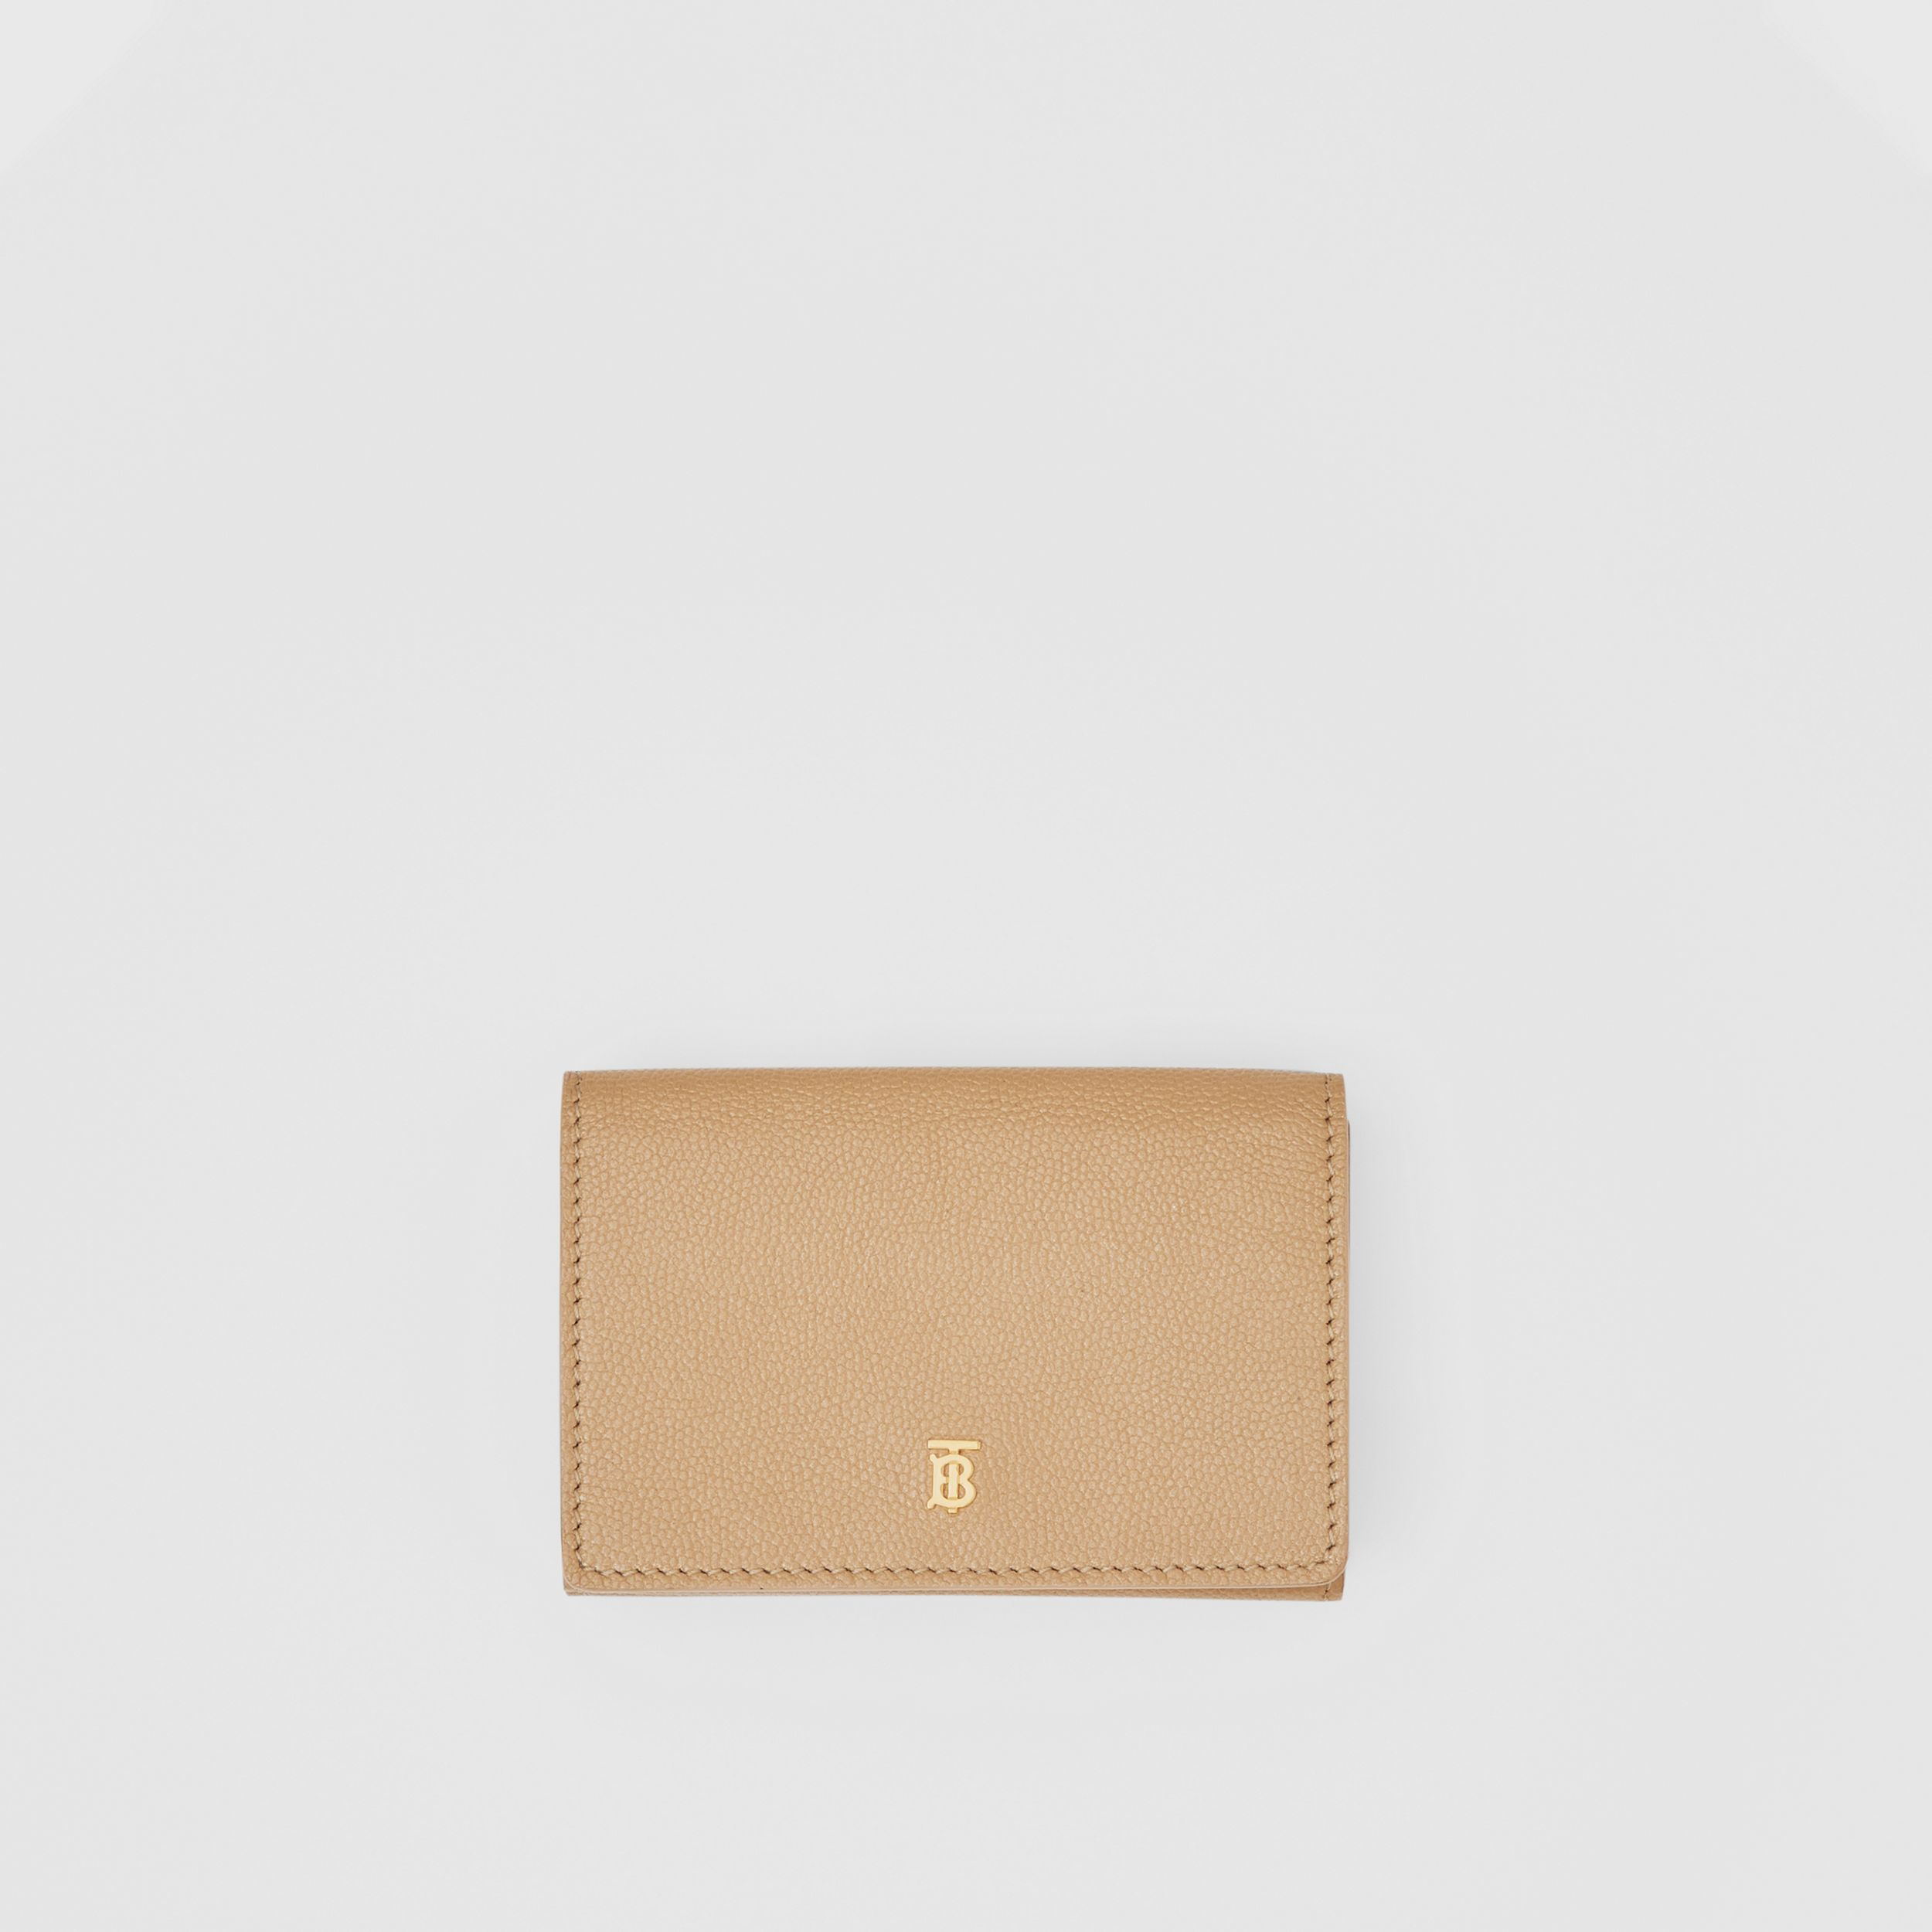 Small Grainy Leather Folding Wallet in Archive Beige - Women | Burberry - 1